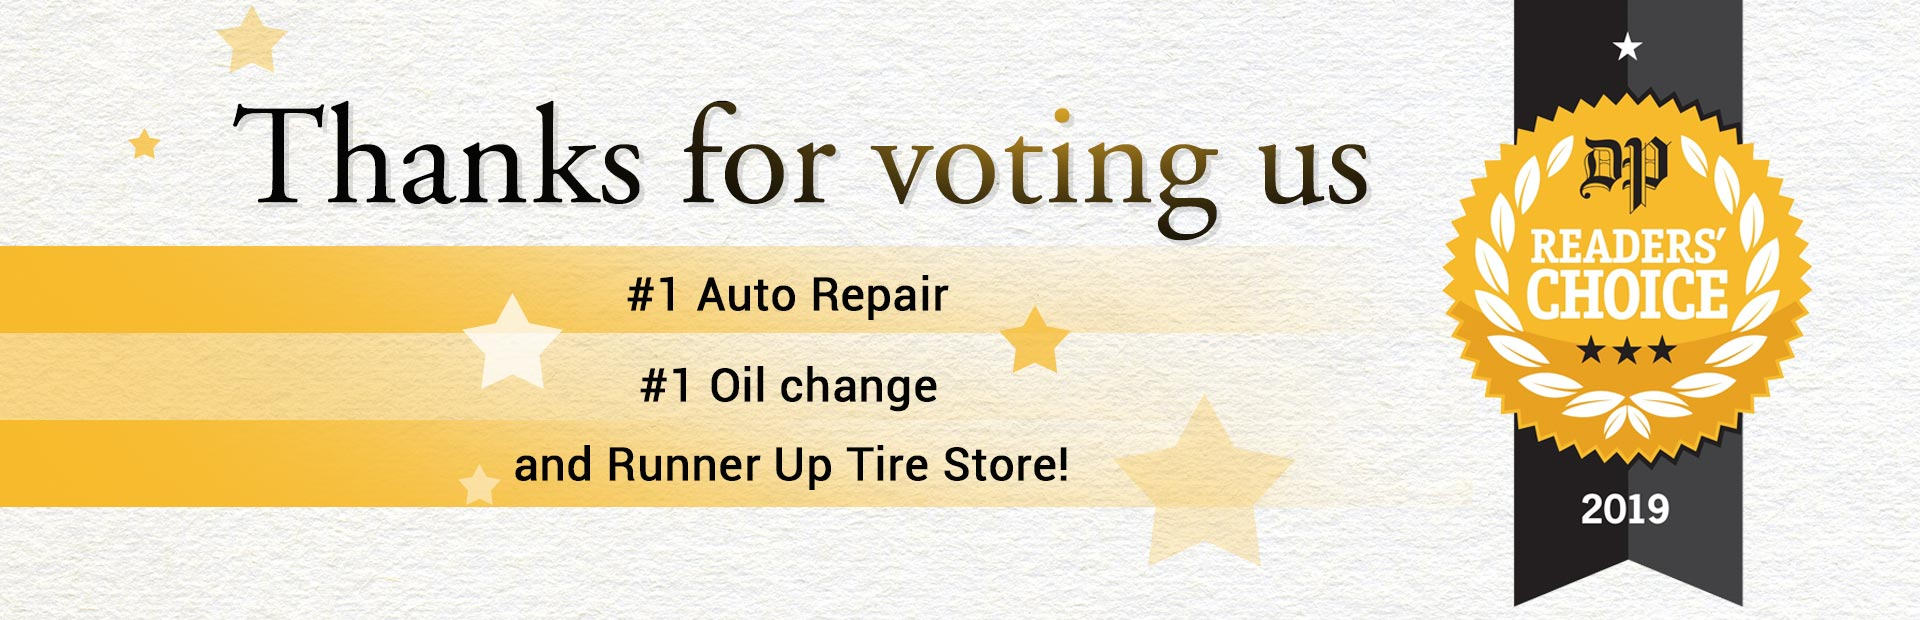 Thanks for Voting Us #1 Auto Repair, #1 Oil Change and Runner up Tire Store!